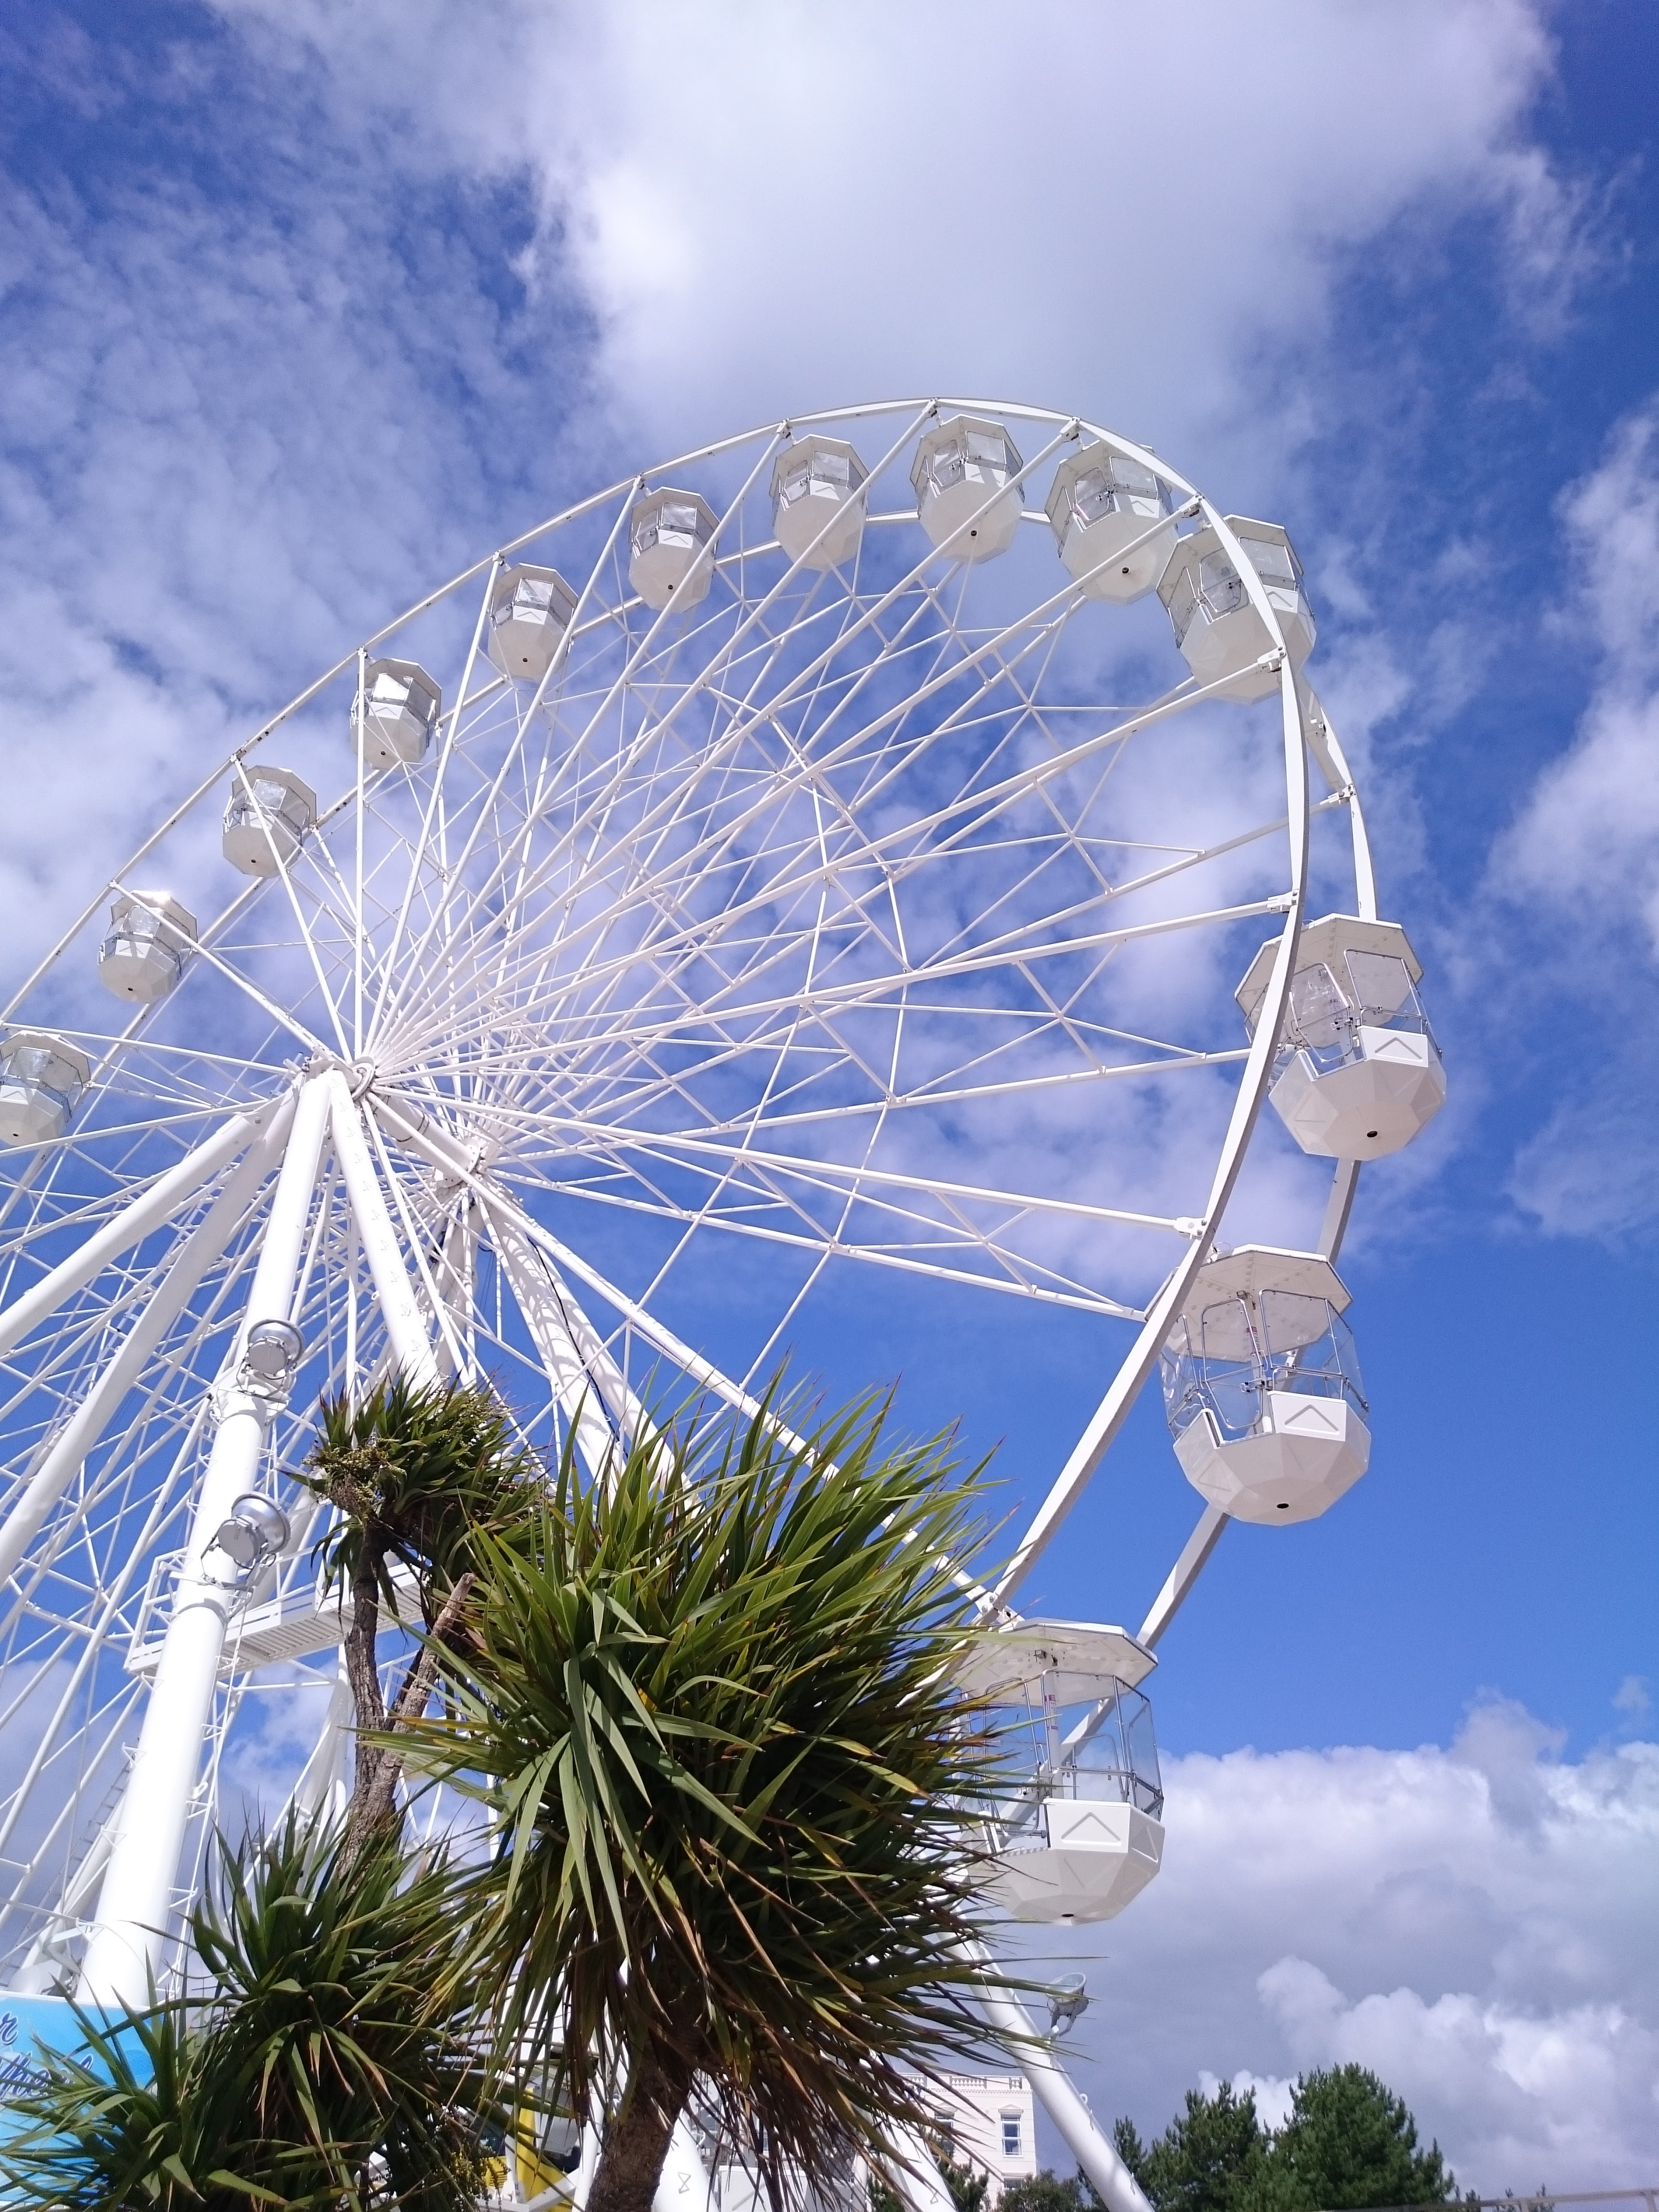 A white Ferris wheel under the bright cloudy sky in Bournemouth.